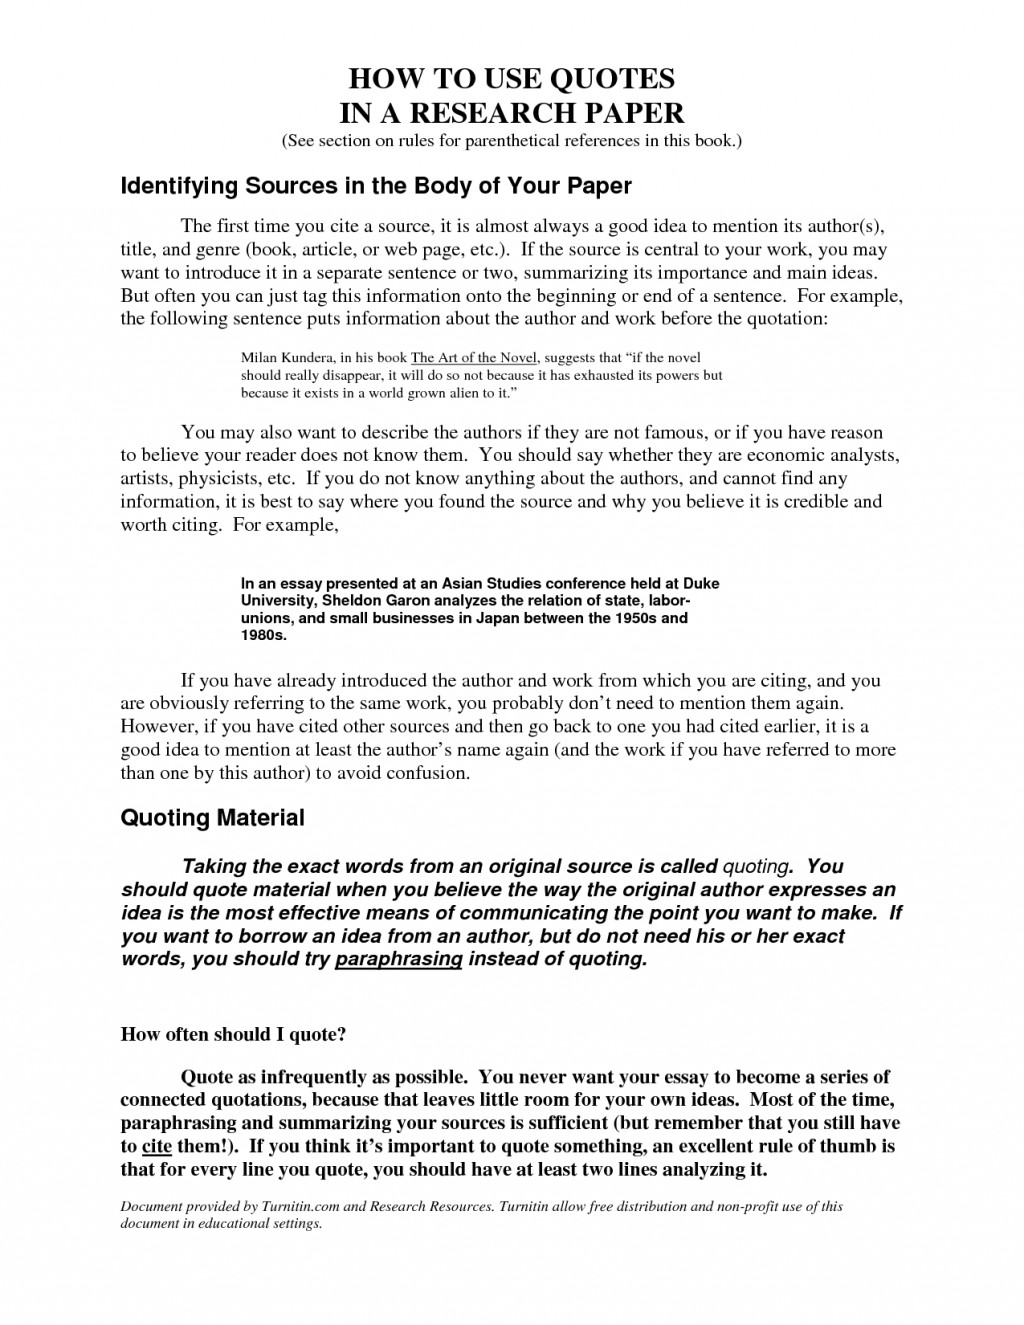 011 Best Solutions Of Writing Quotes In Essays Marvelous Embedding On Quotestopics Essay Example How To Quote Book Formidable A An Cite Mla Using Title Large